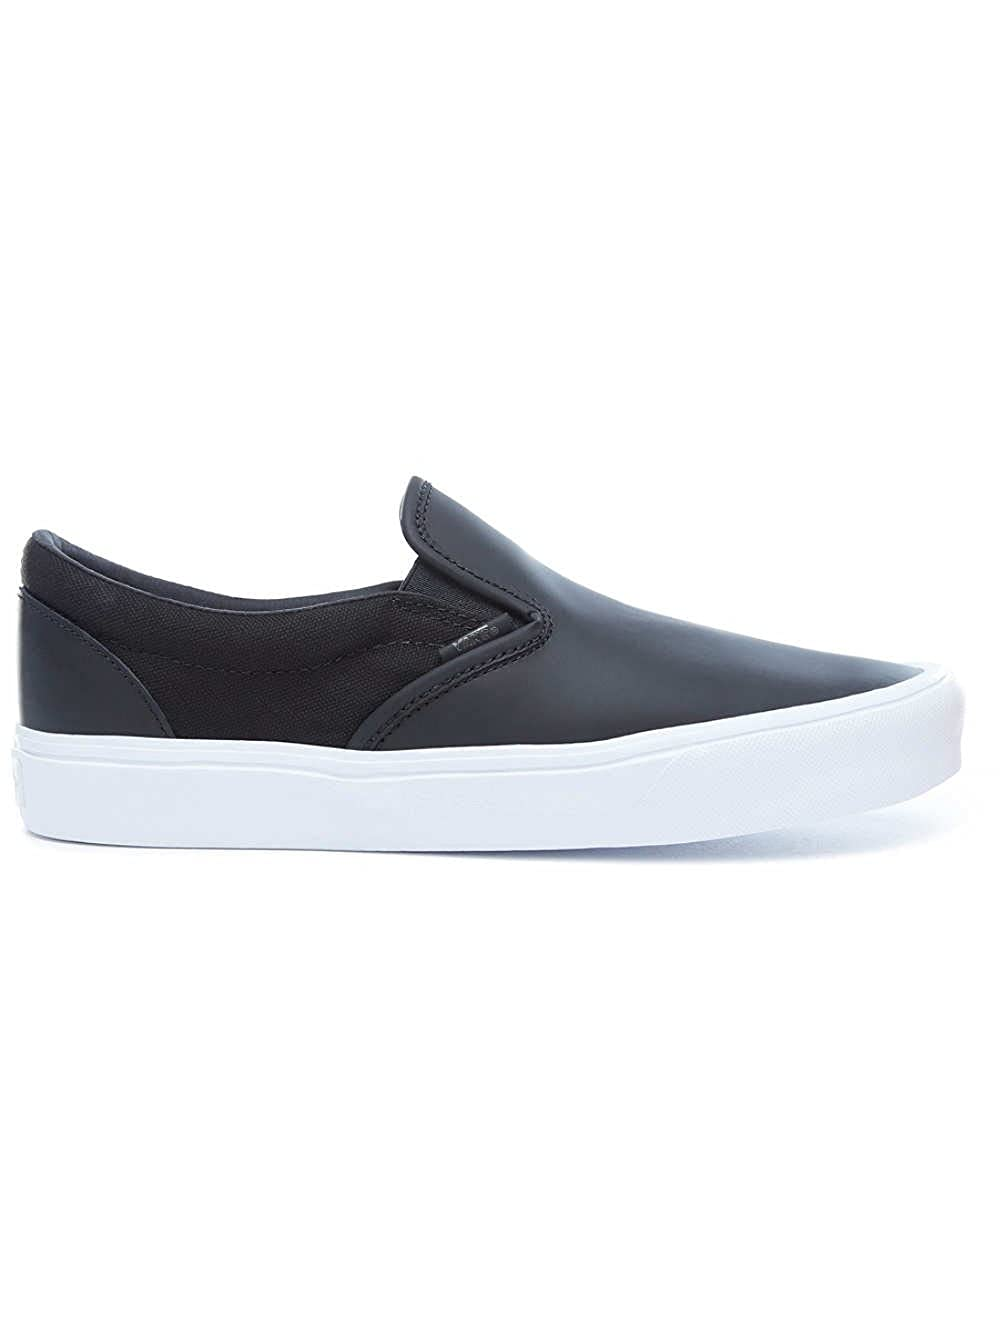 Vans Slip Ons Men Rains Lite Slip-Ons Black True White  Amazon.co.uk  Shoes    Bags 20d954e75